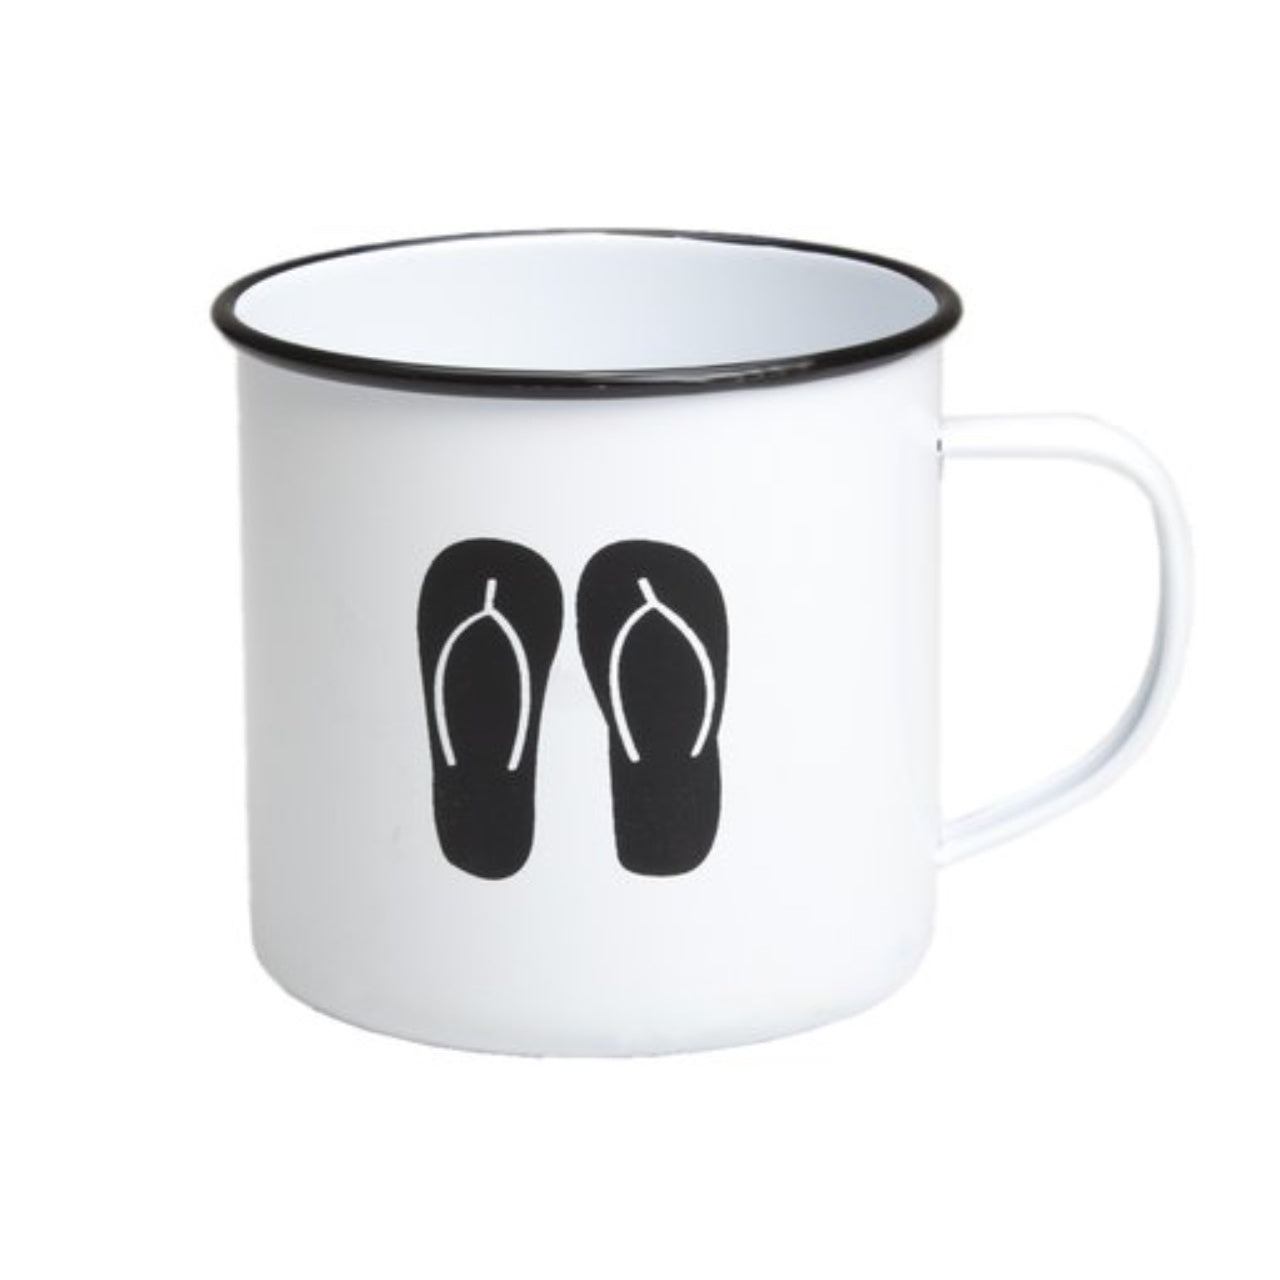 Retro Kitchen Enamel Mug -Thongs